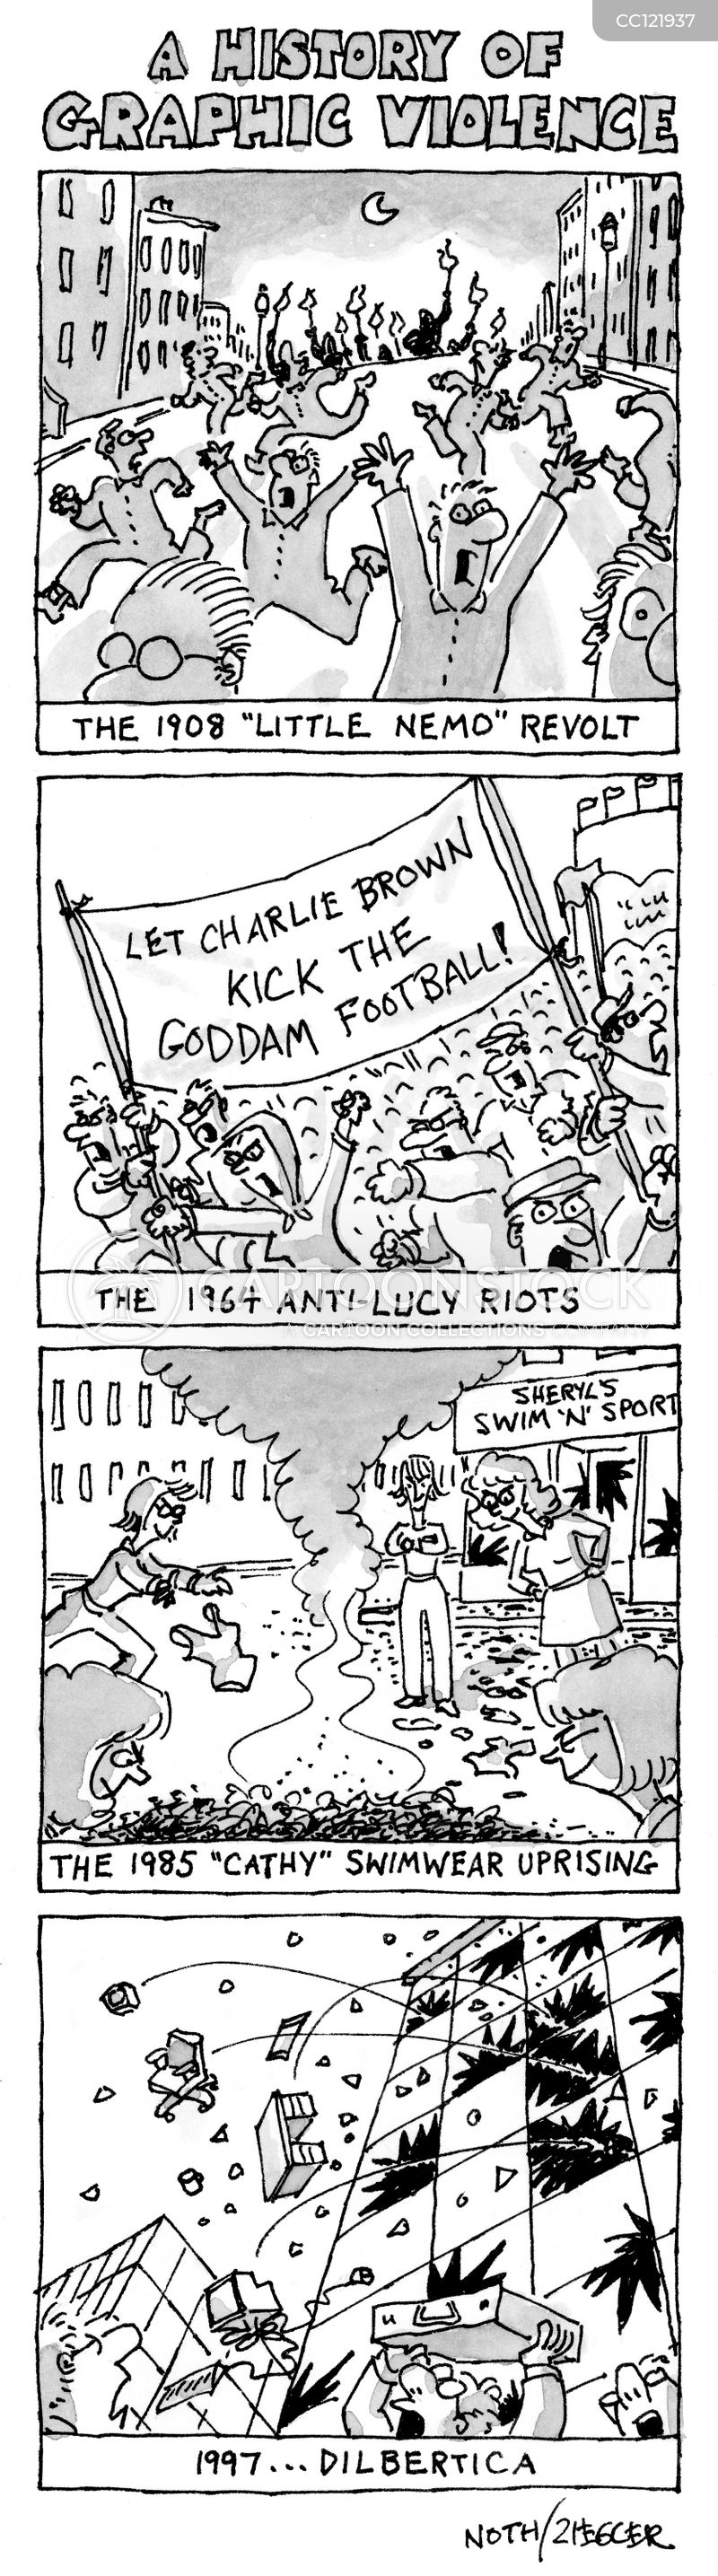 riots cartoon